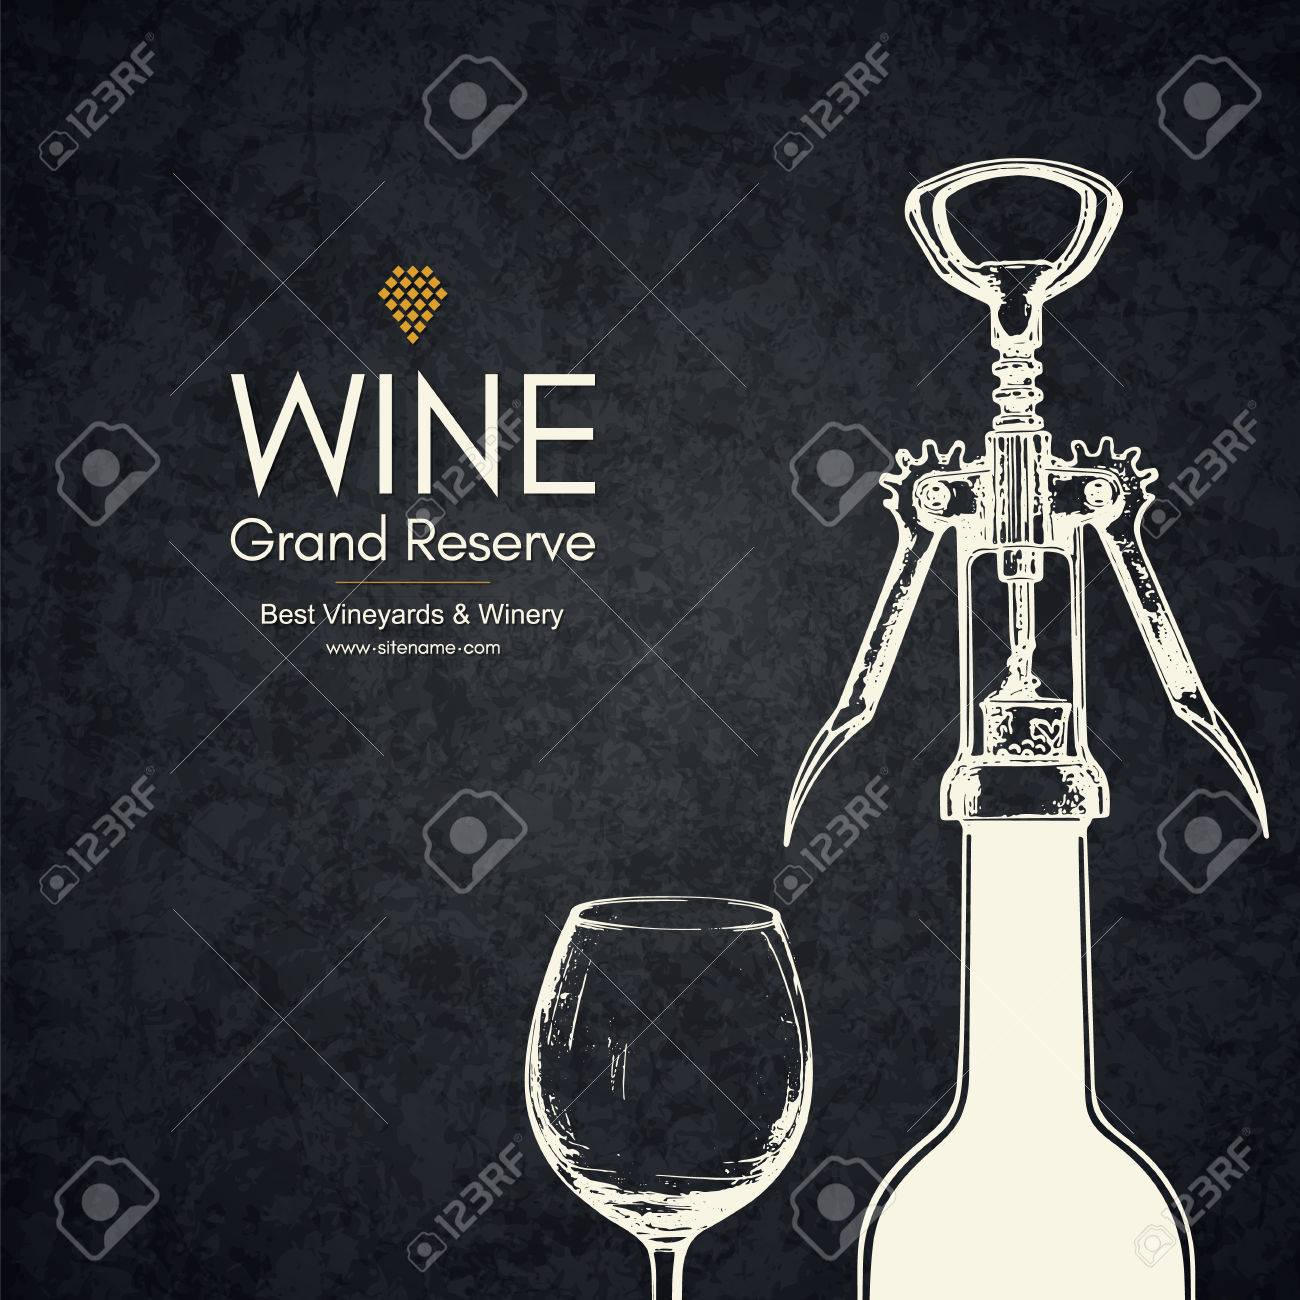 vector brochure template for winery cafe restaurant bar wine bottles and glasses